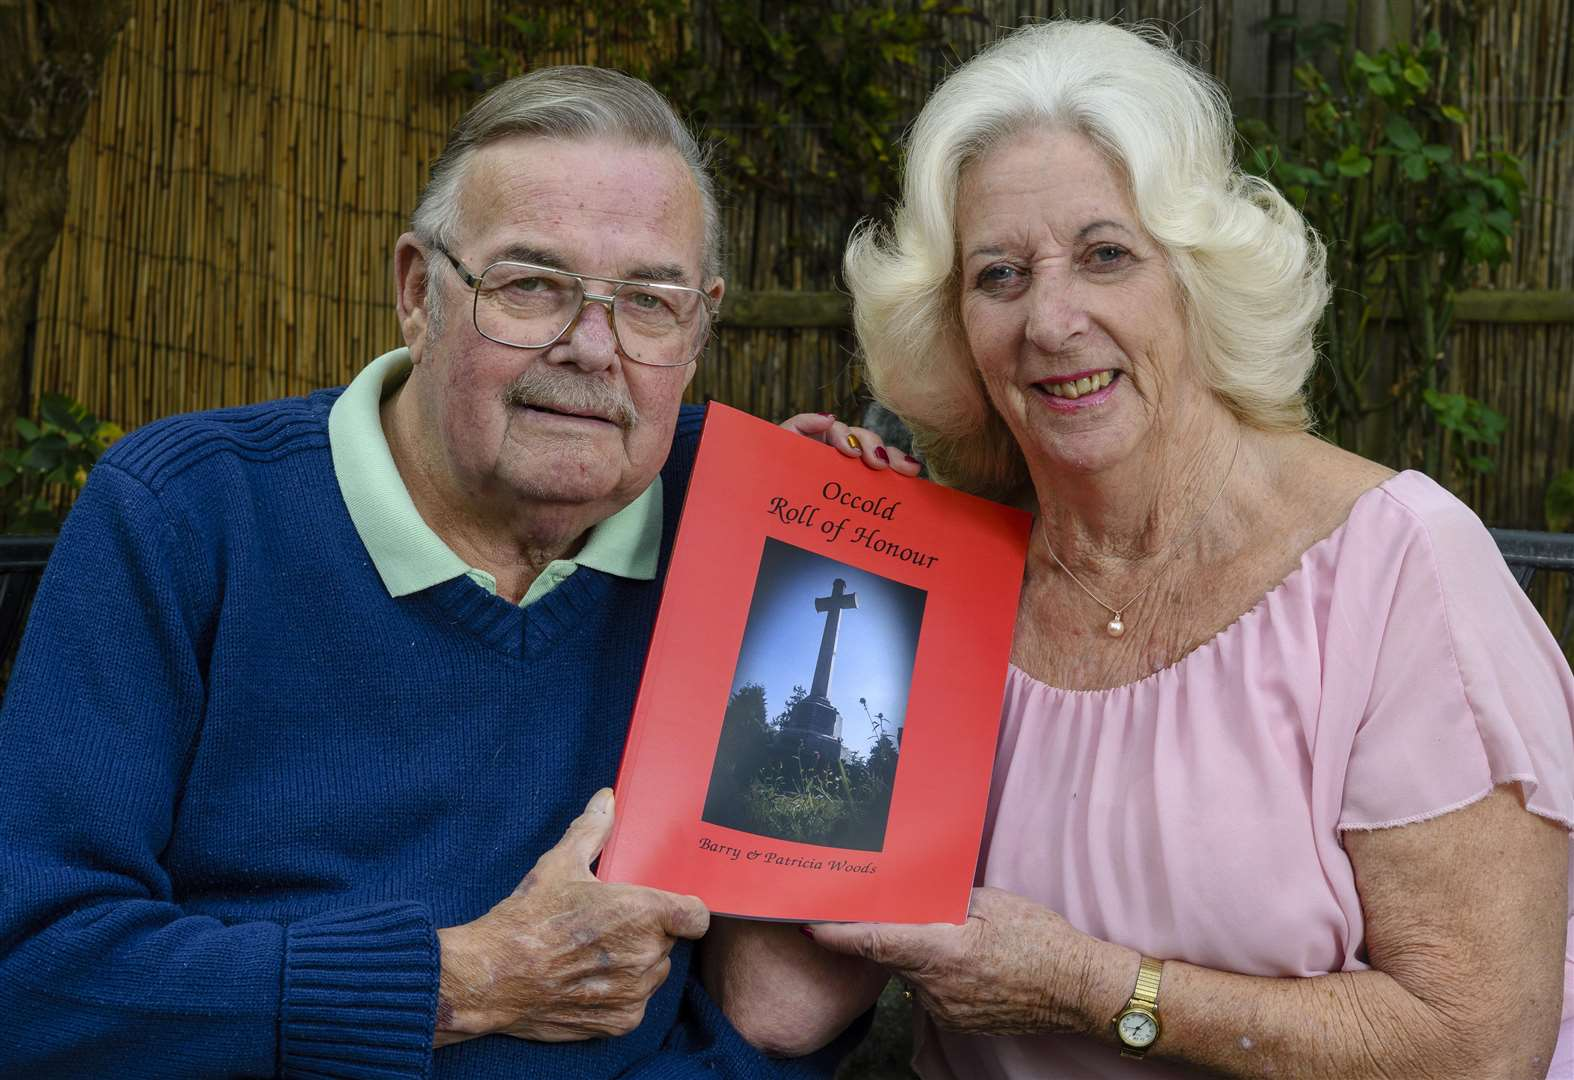 Book honours village men who fell in the Great War